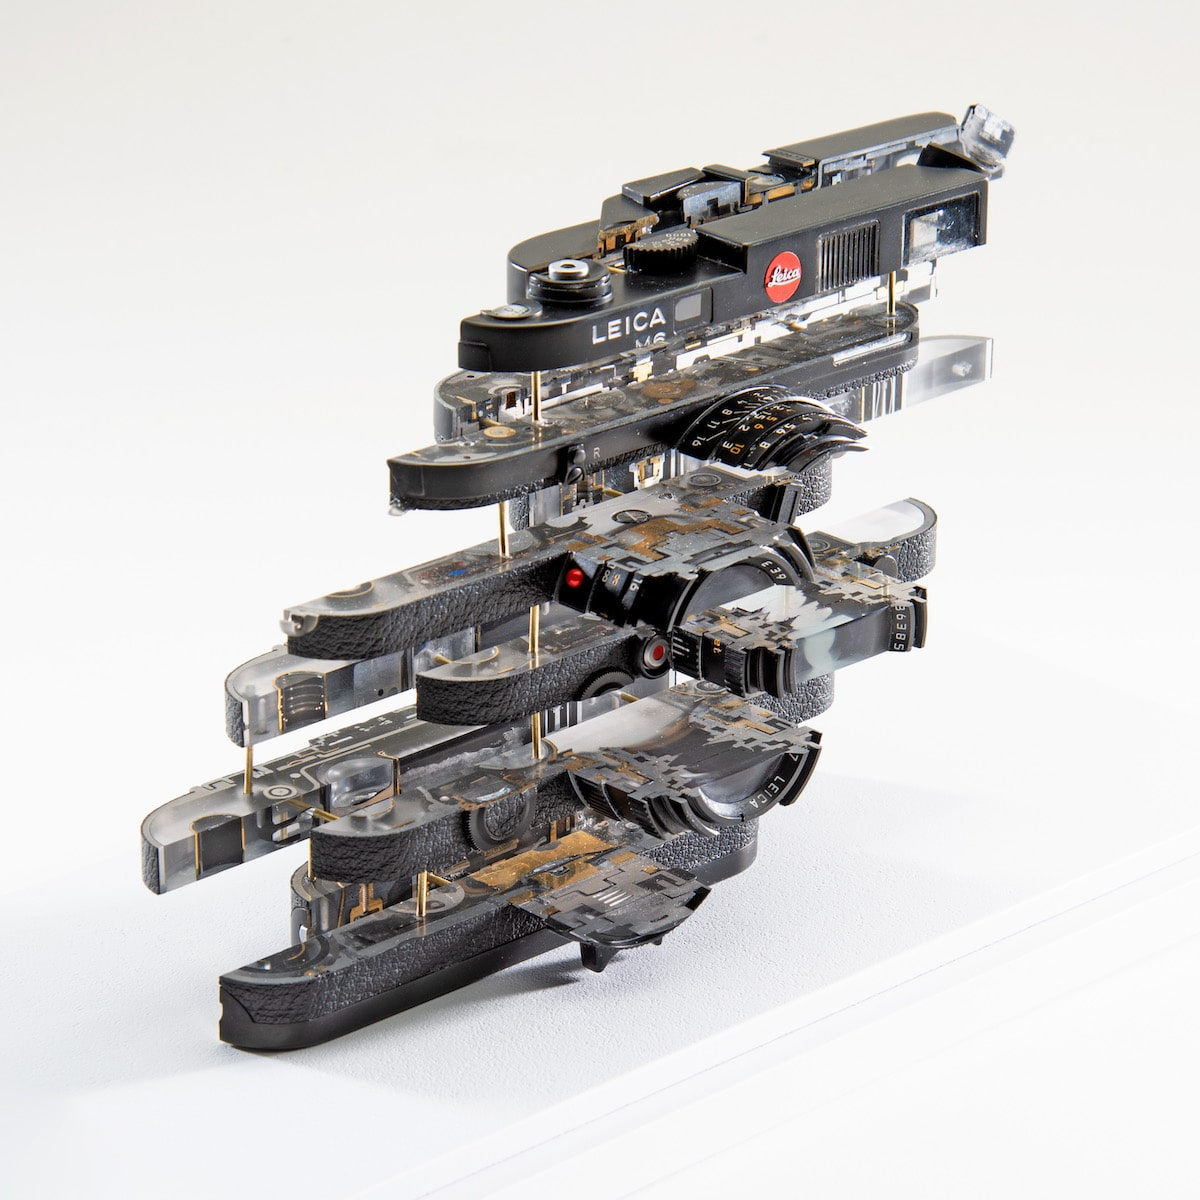 Deconstructed Leica by Fabian Oefner